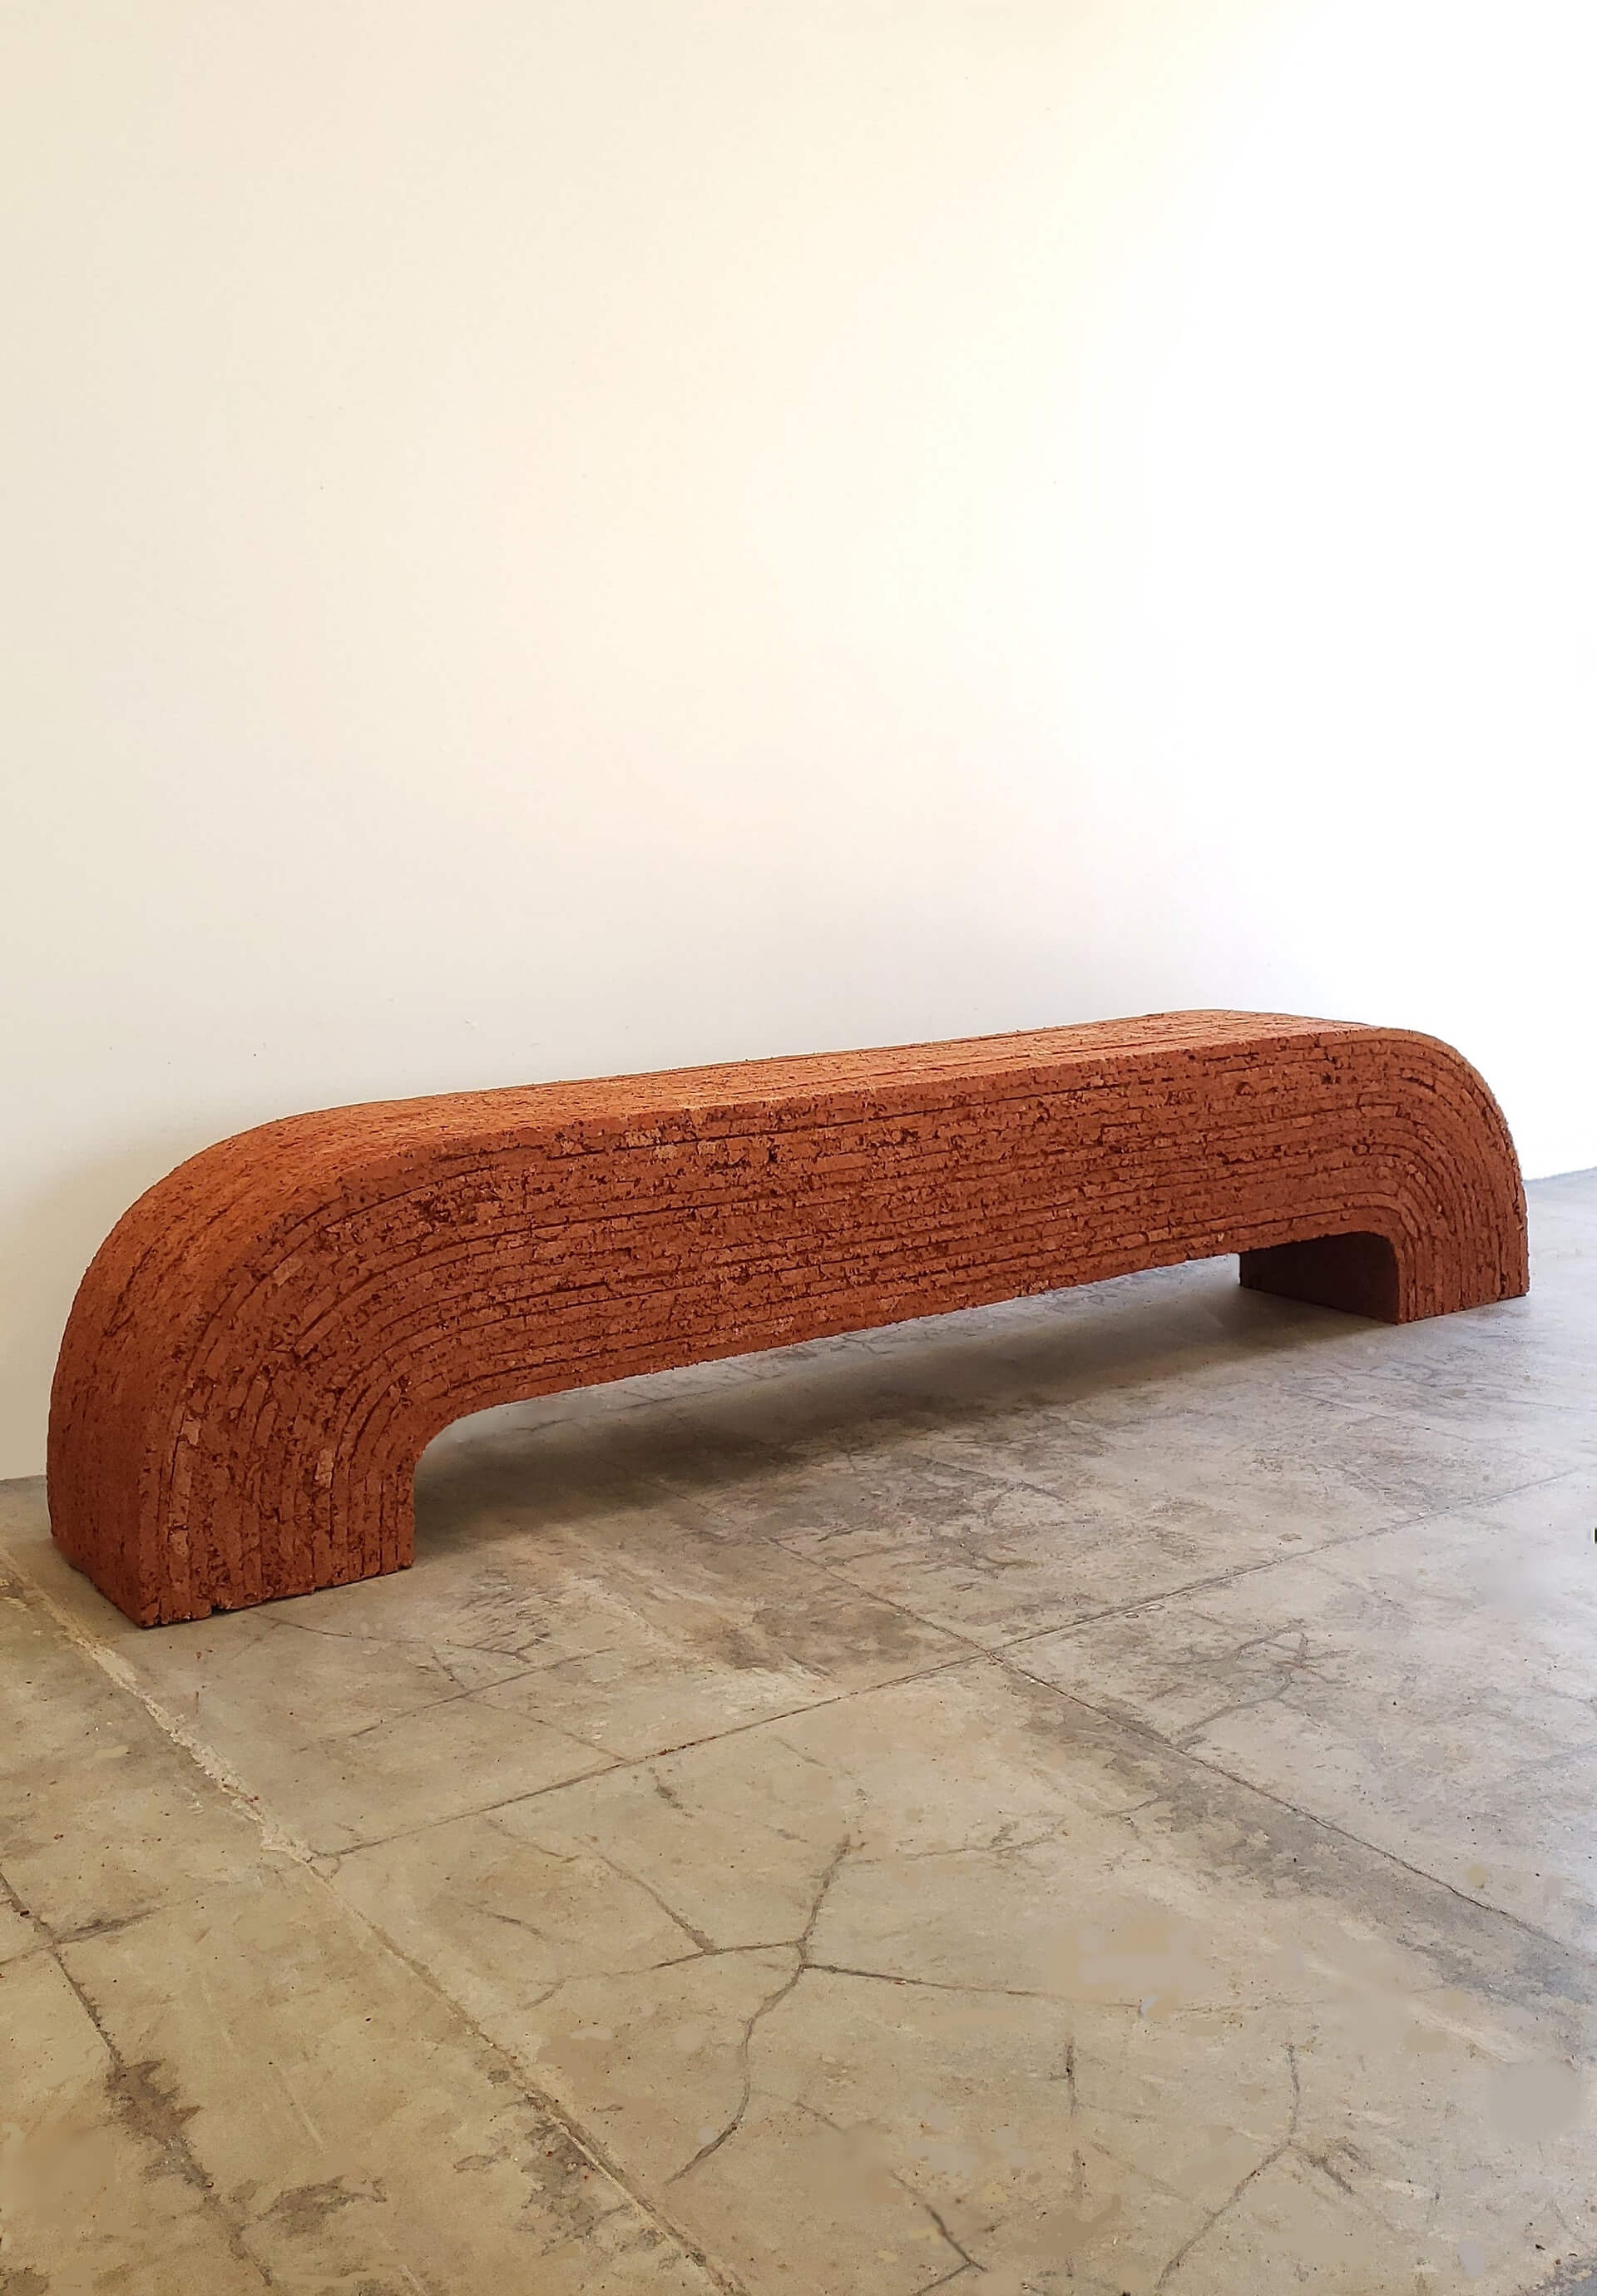 Banco Estrada (Road Bench) | Made in Brazil: Curated by Campana Brothers | STIR X Script |STIRworld